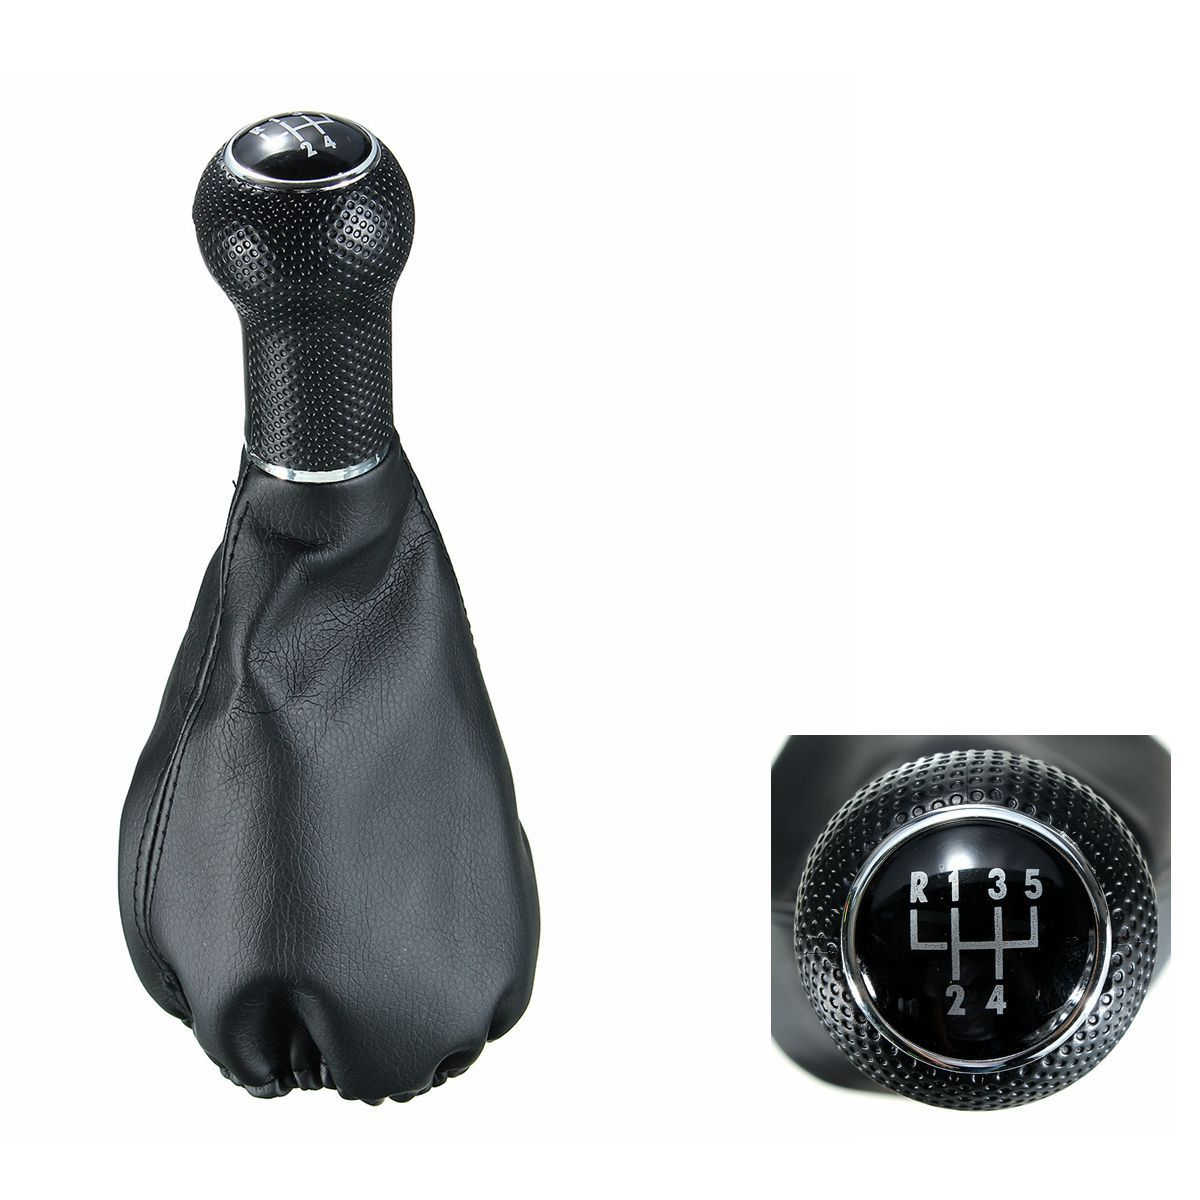 Gear Shift Knob Boot 5 Speed Leather For VW POLO ClASSIC 6N 6N2 SEAT IBIZA Auto Accessories